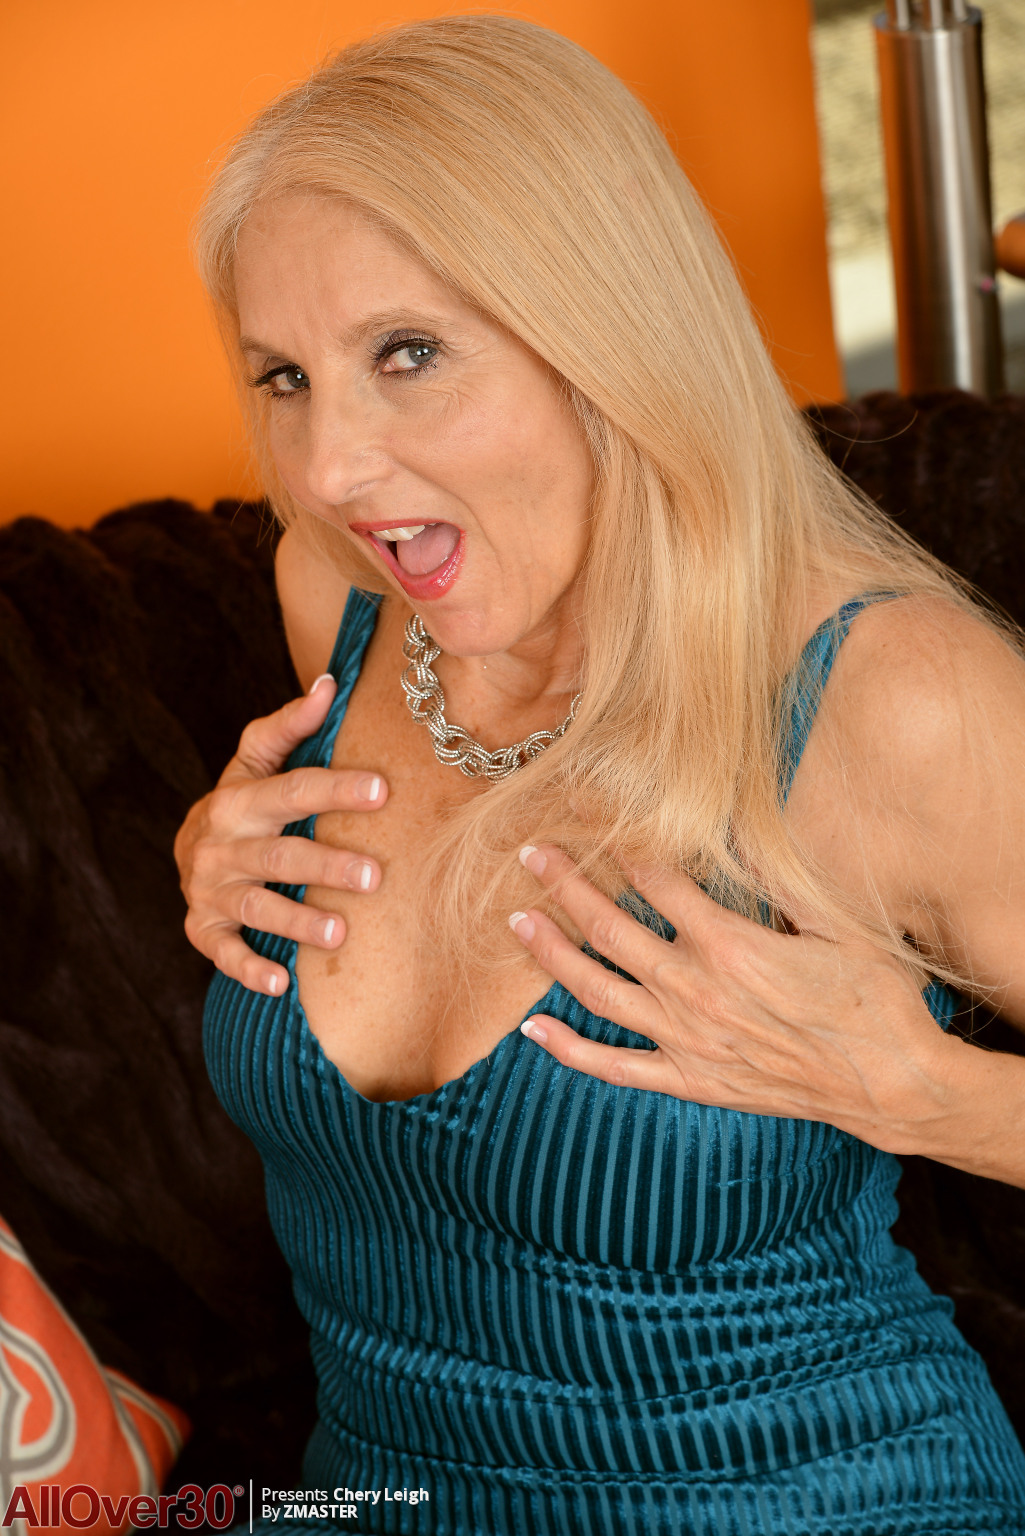 chery-leigh-mature-blonde-02